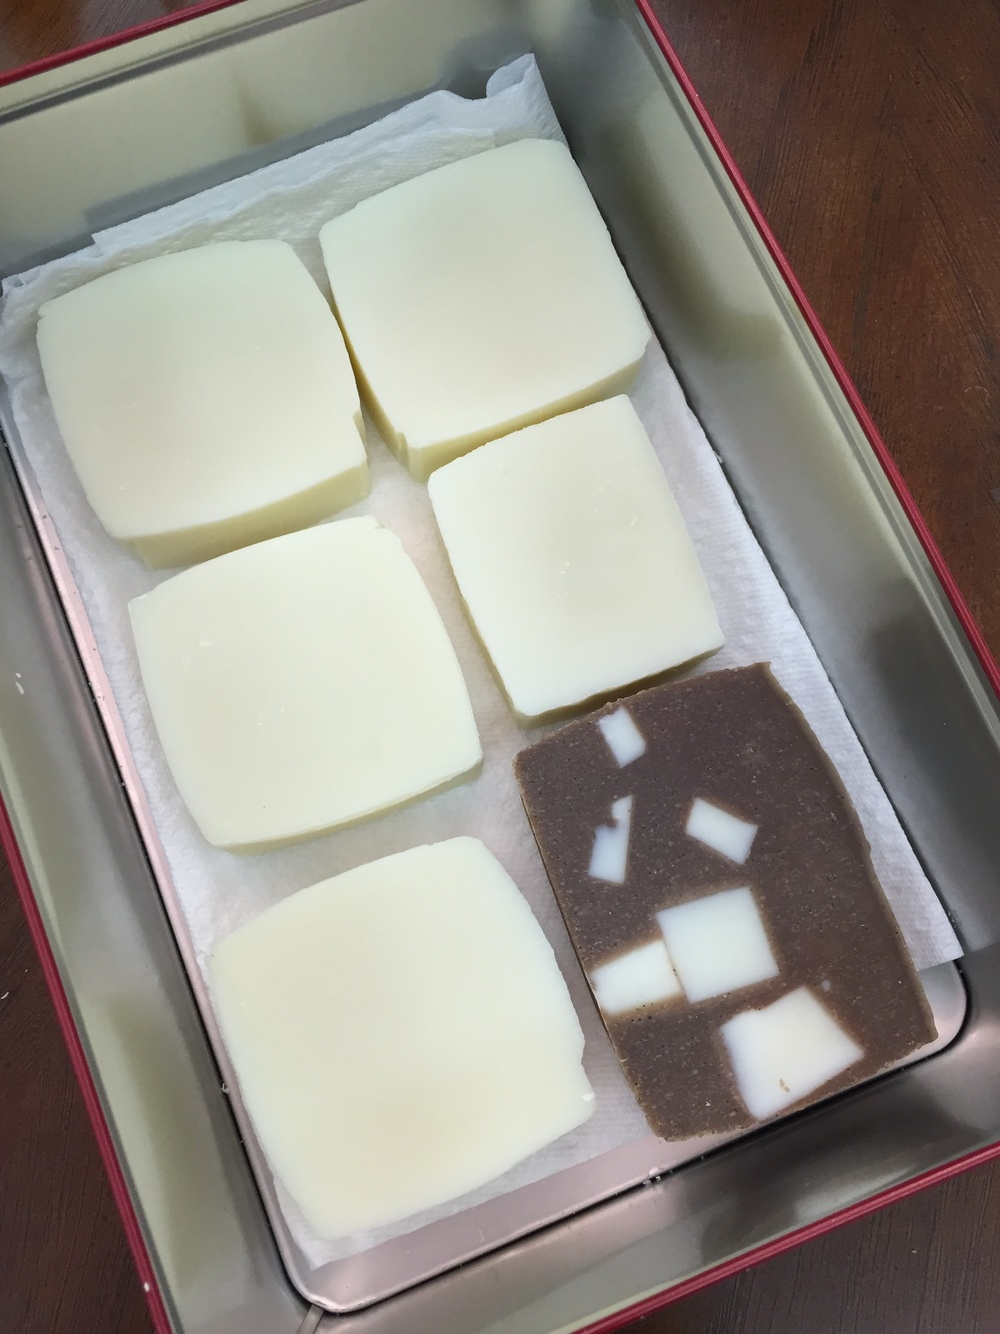 White: Marseille Soap; Brown: Coffee Coconut Soap with Marseille Soap cubes